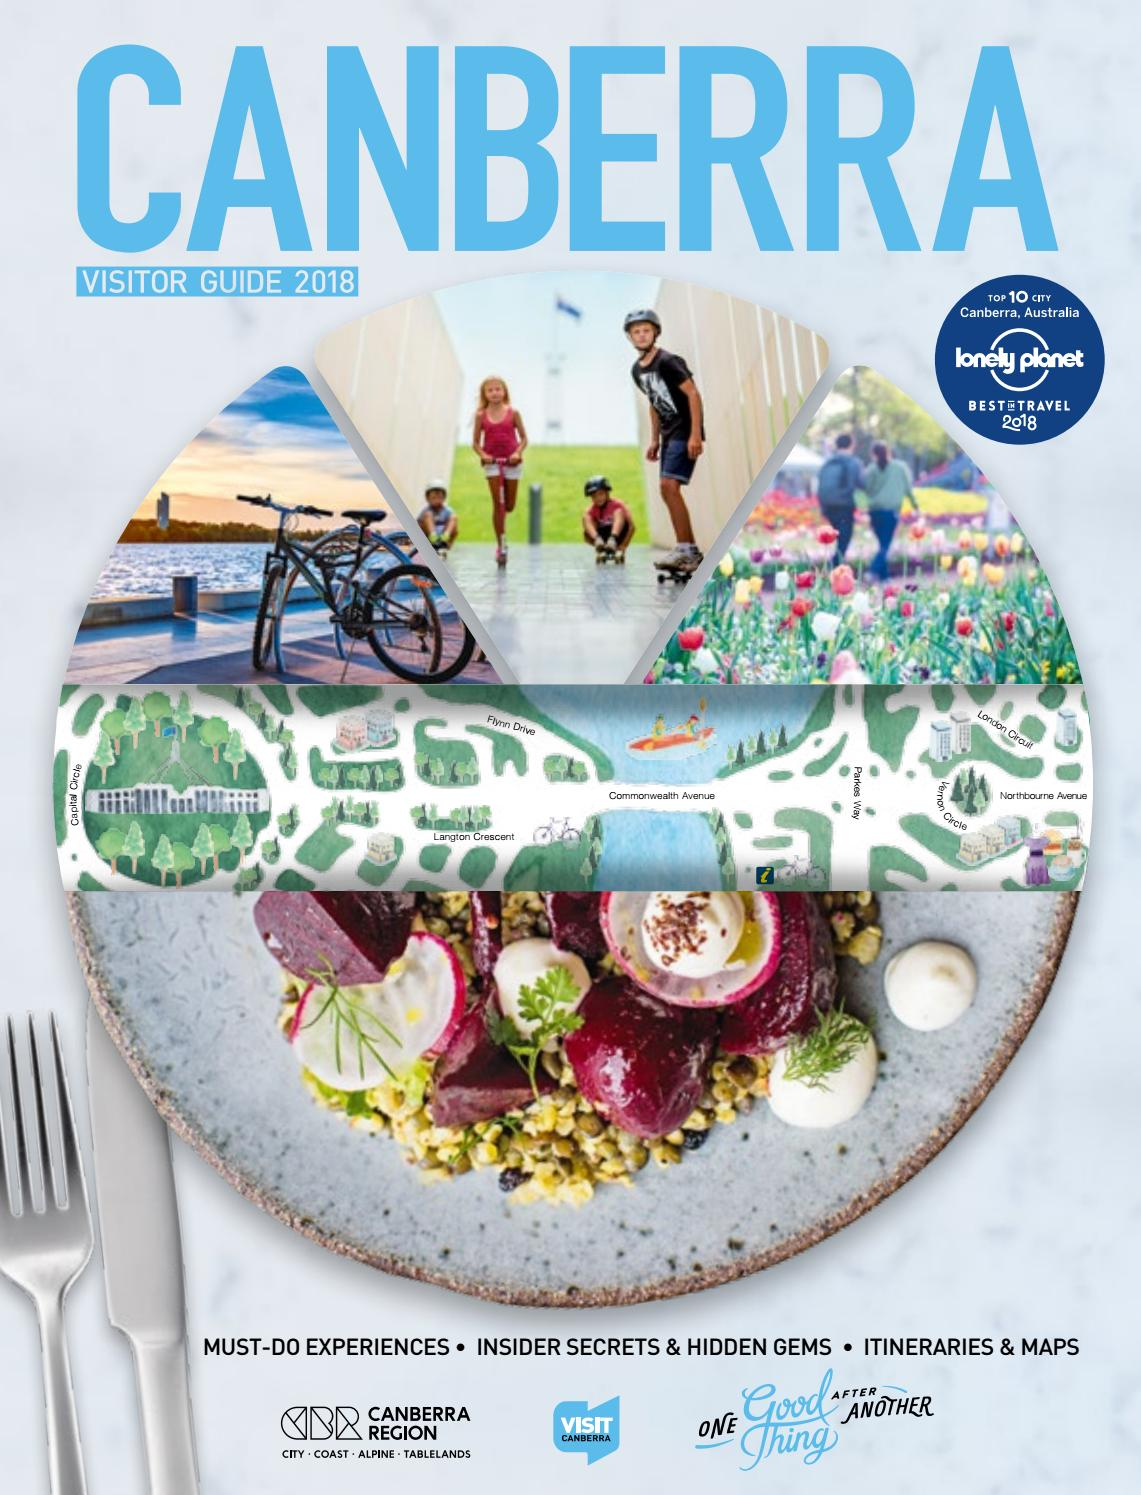 Canberra Visitor Guide 2018 by VisitCanberra - issuu